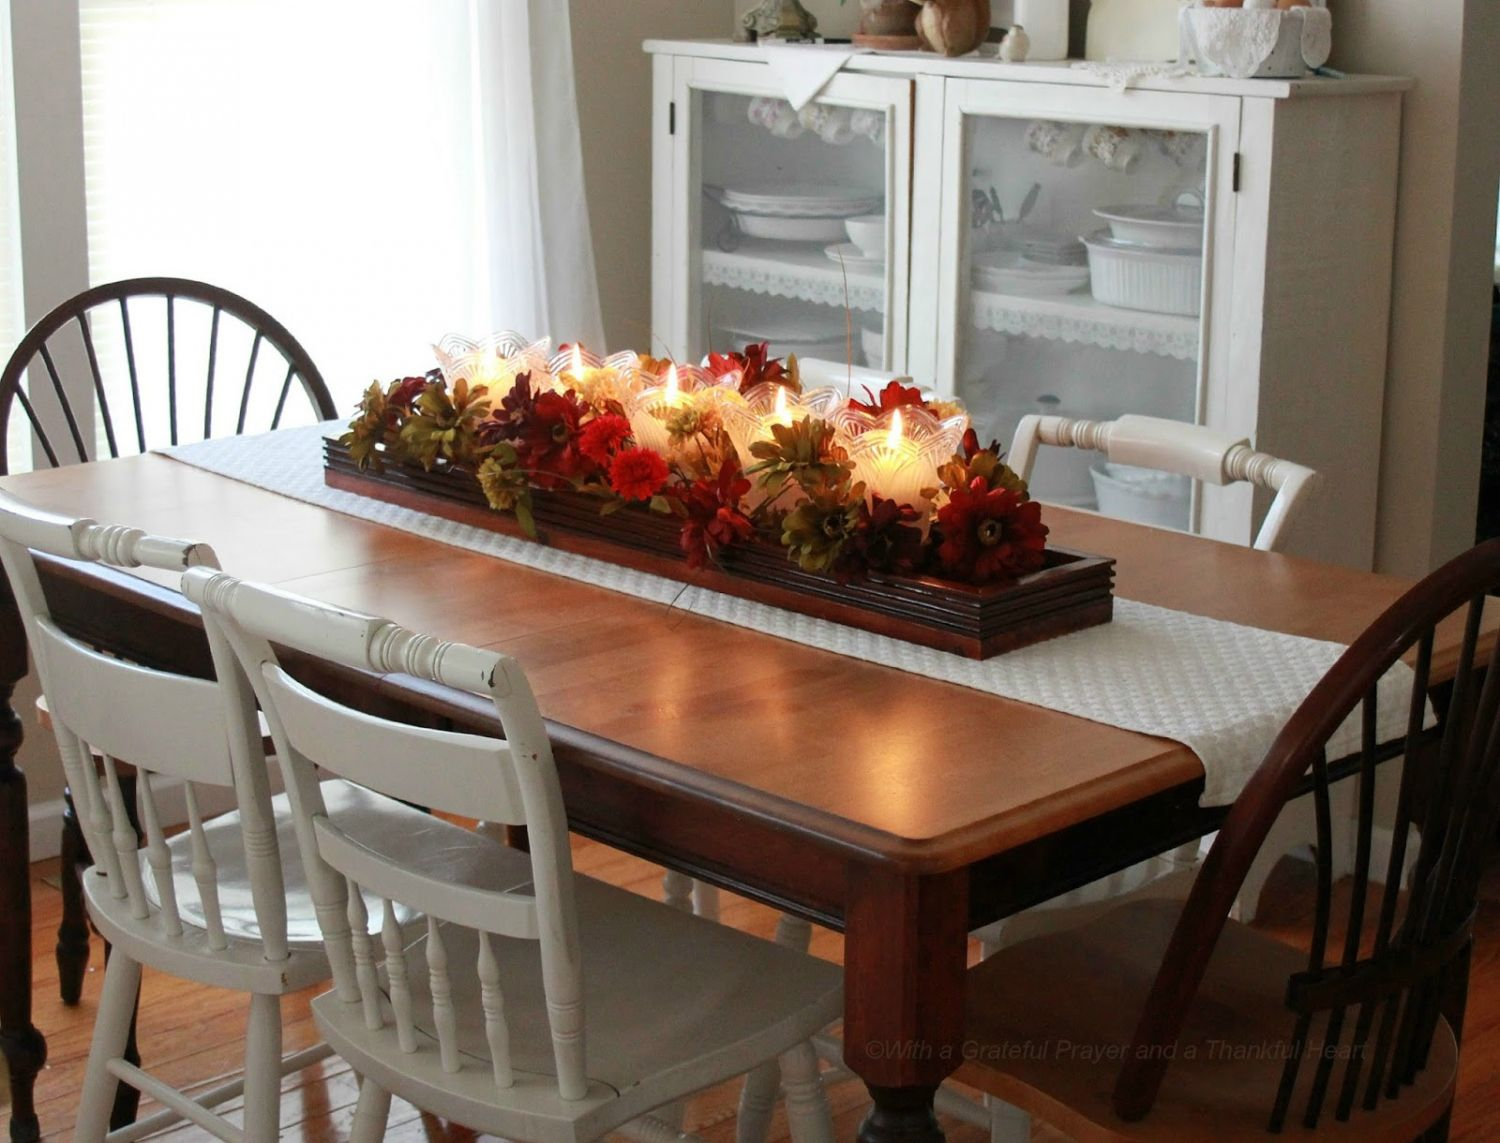 Kitchen Table Centerpiece Ideas Pinterest Kitchen Counter Decorating Ideas Dining Room Table Centerpieces Kitchen Table Centerpiece Dining Table Centerpiece